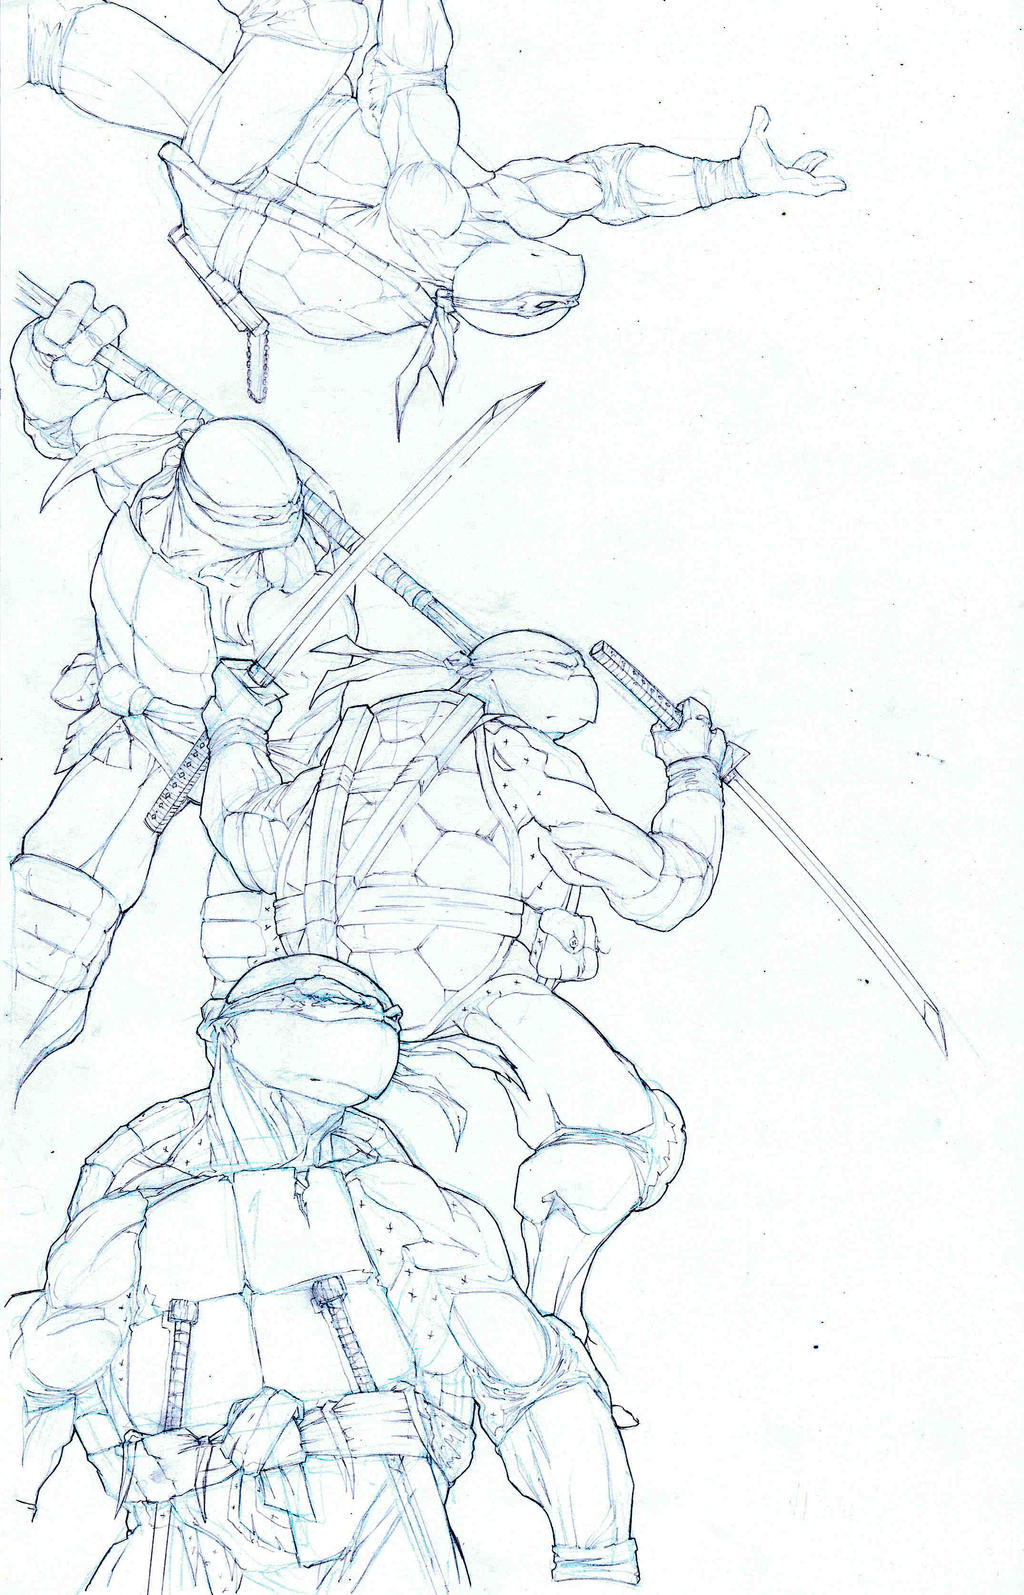 TMNT final pencils by victoroil